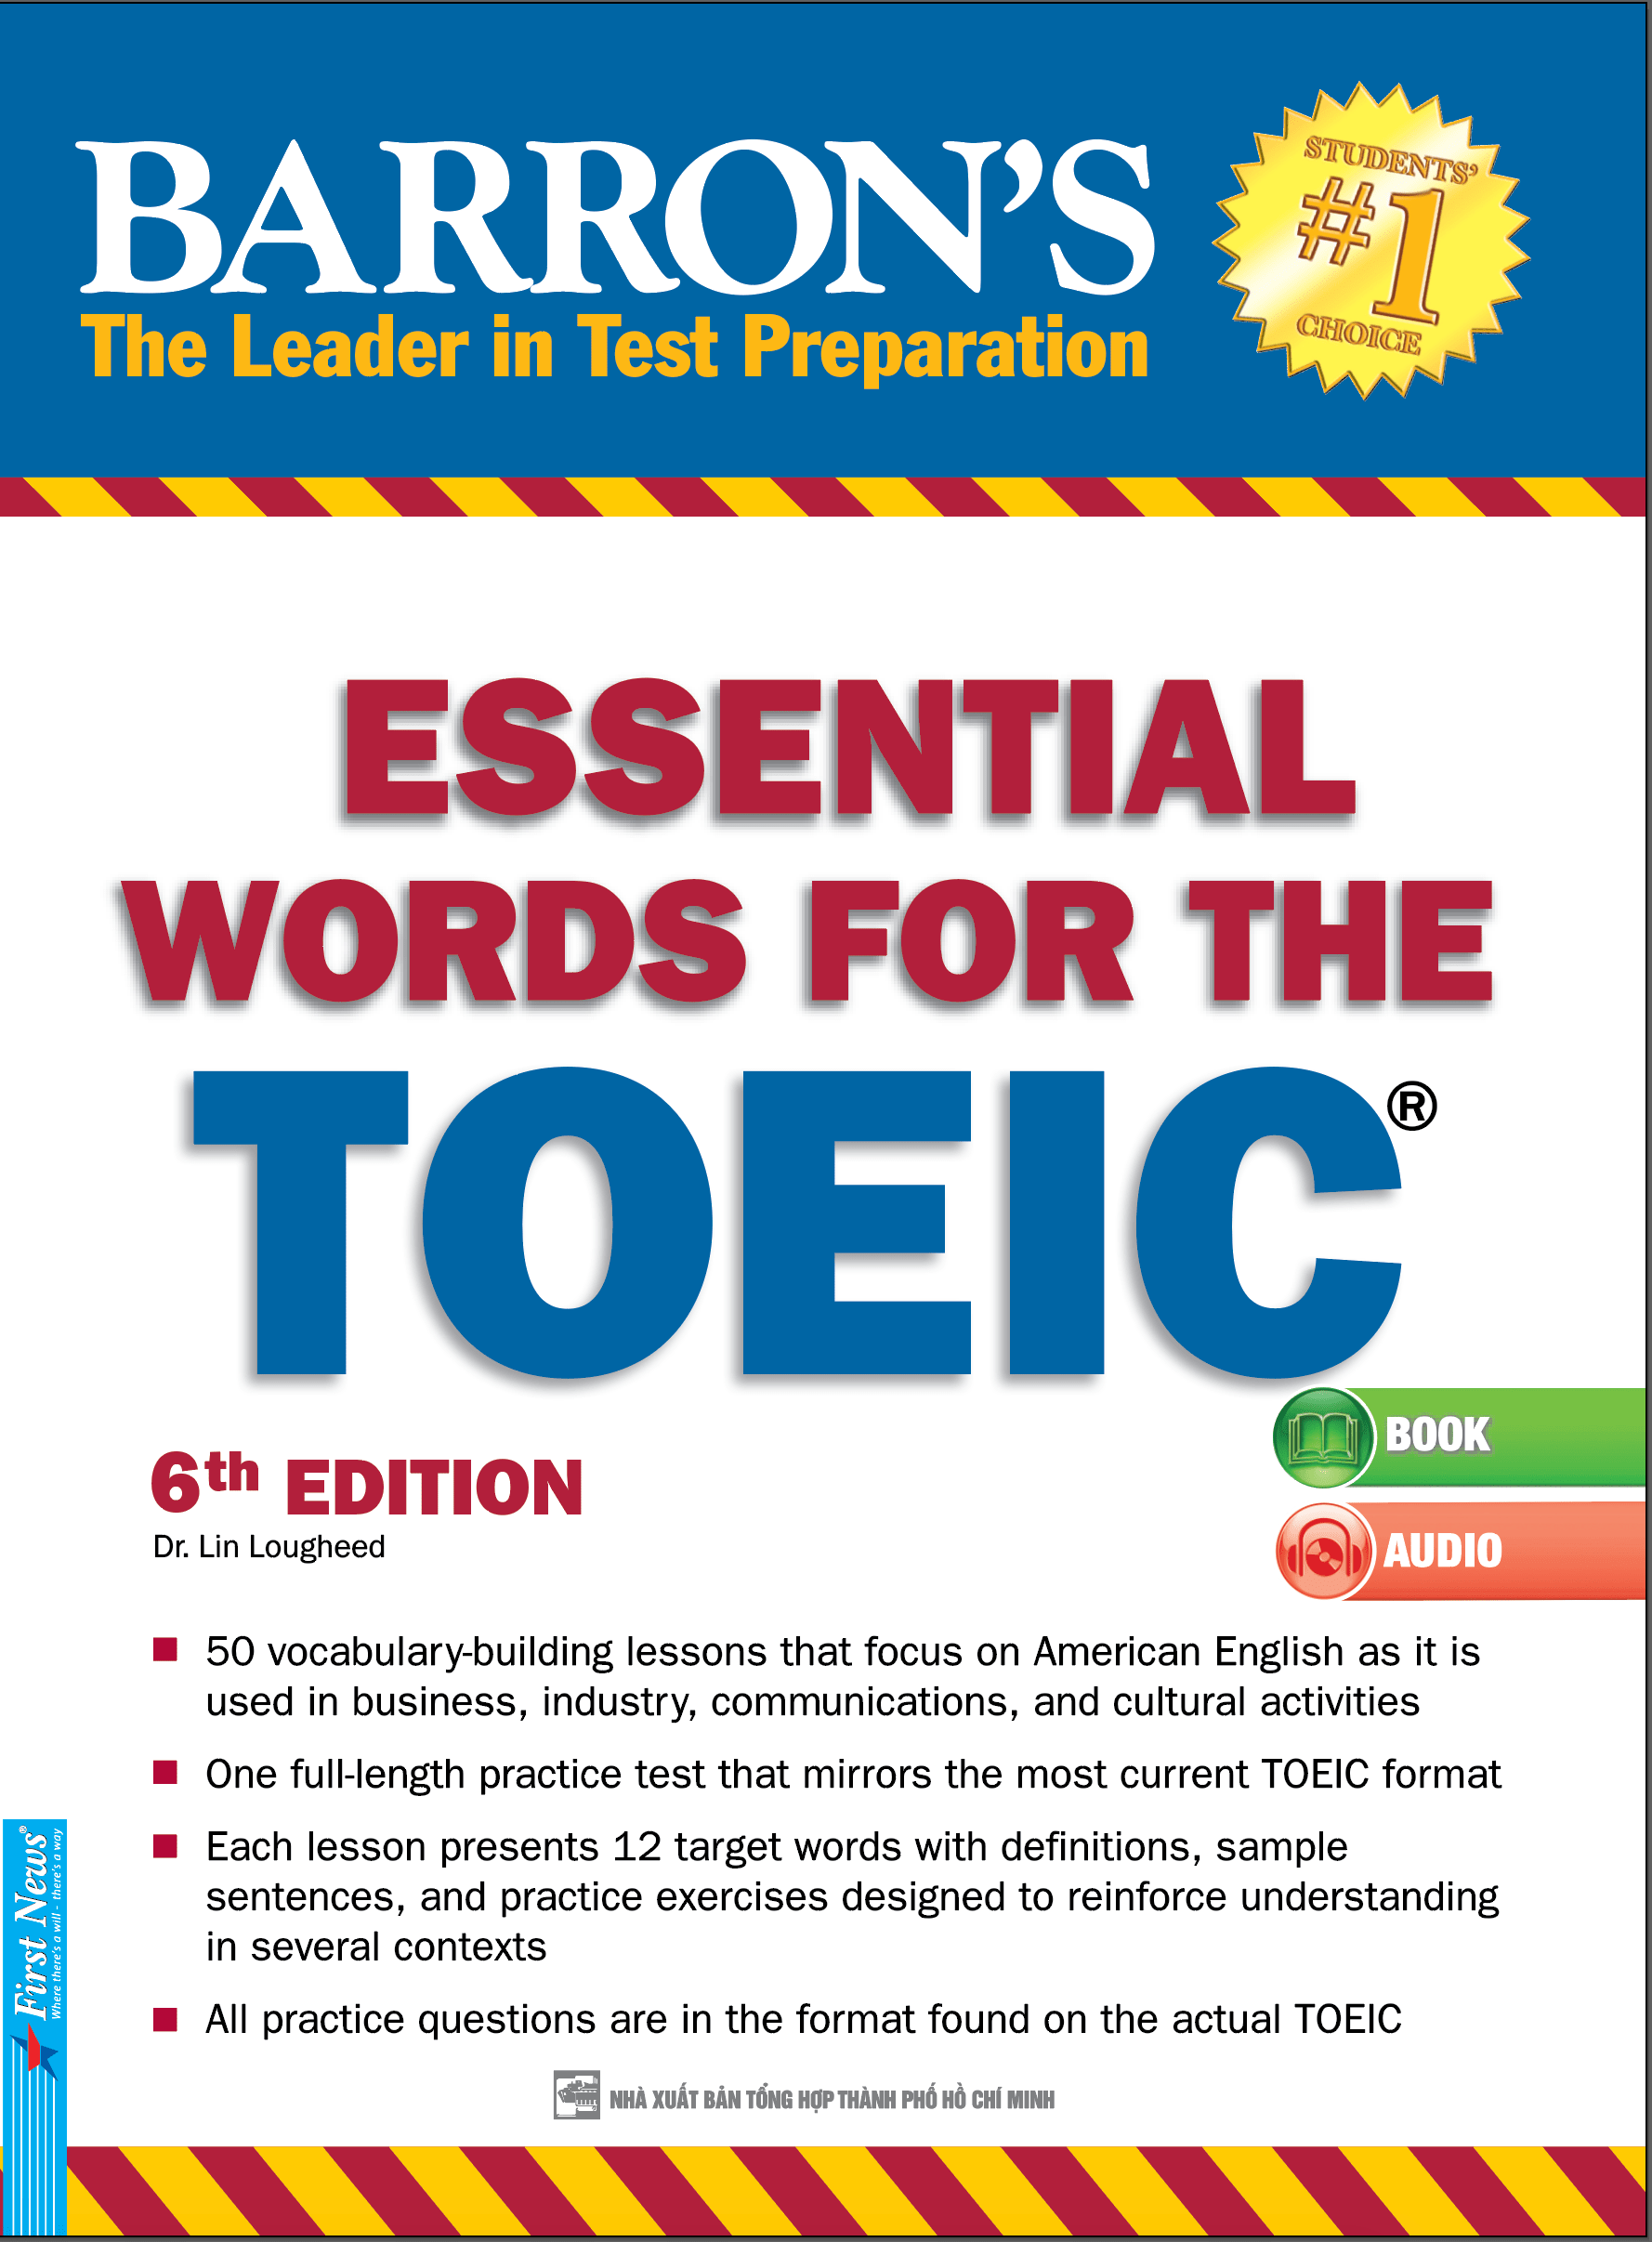 barrons-essential-words-for-the-toeic-copy.png